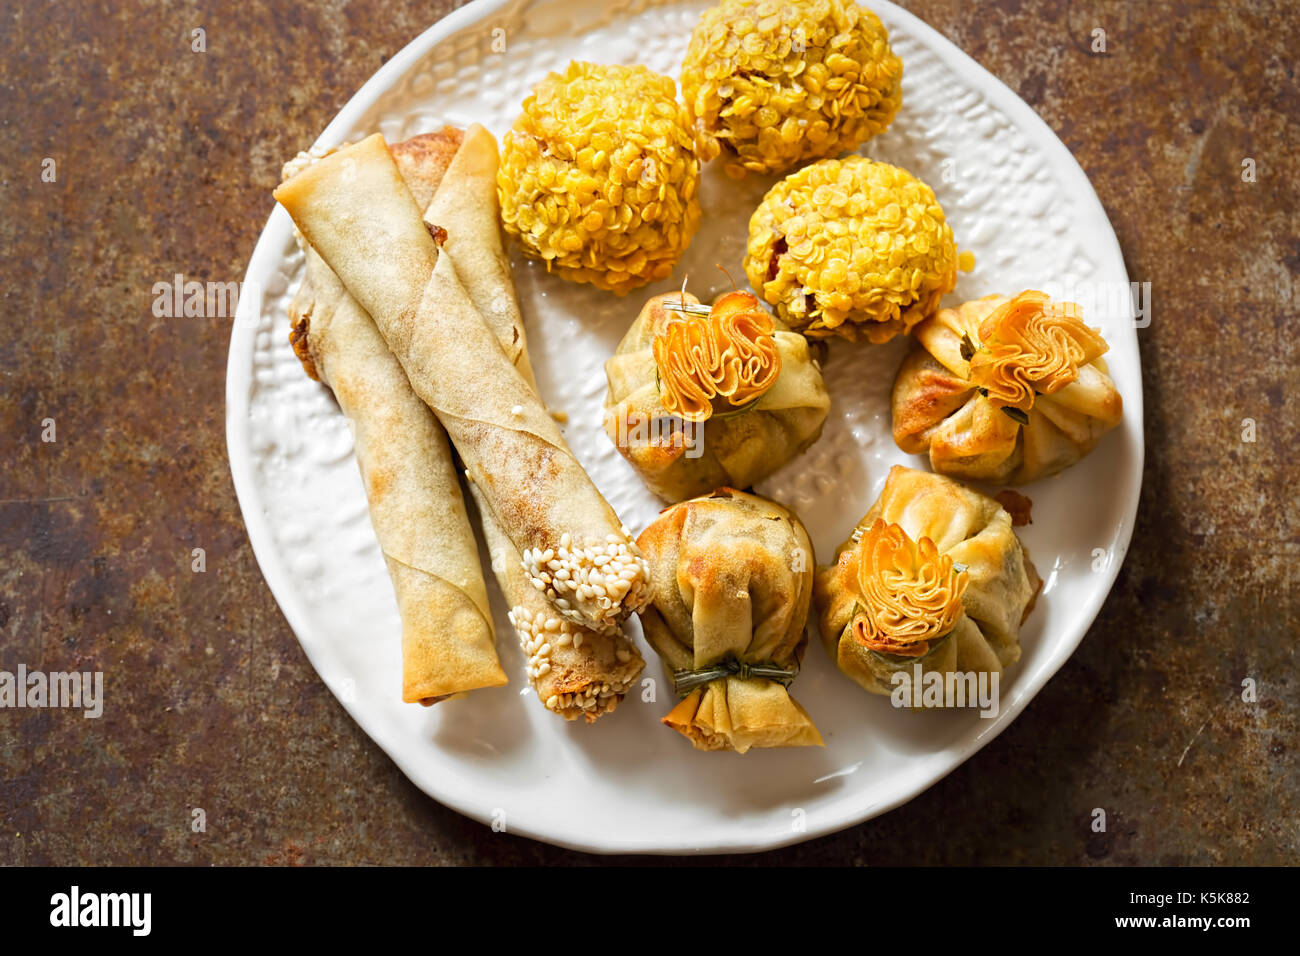 Duck party food selection. Sesame duck cigars, duck moneybags, crispy duck bonbons. - Stock Image